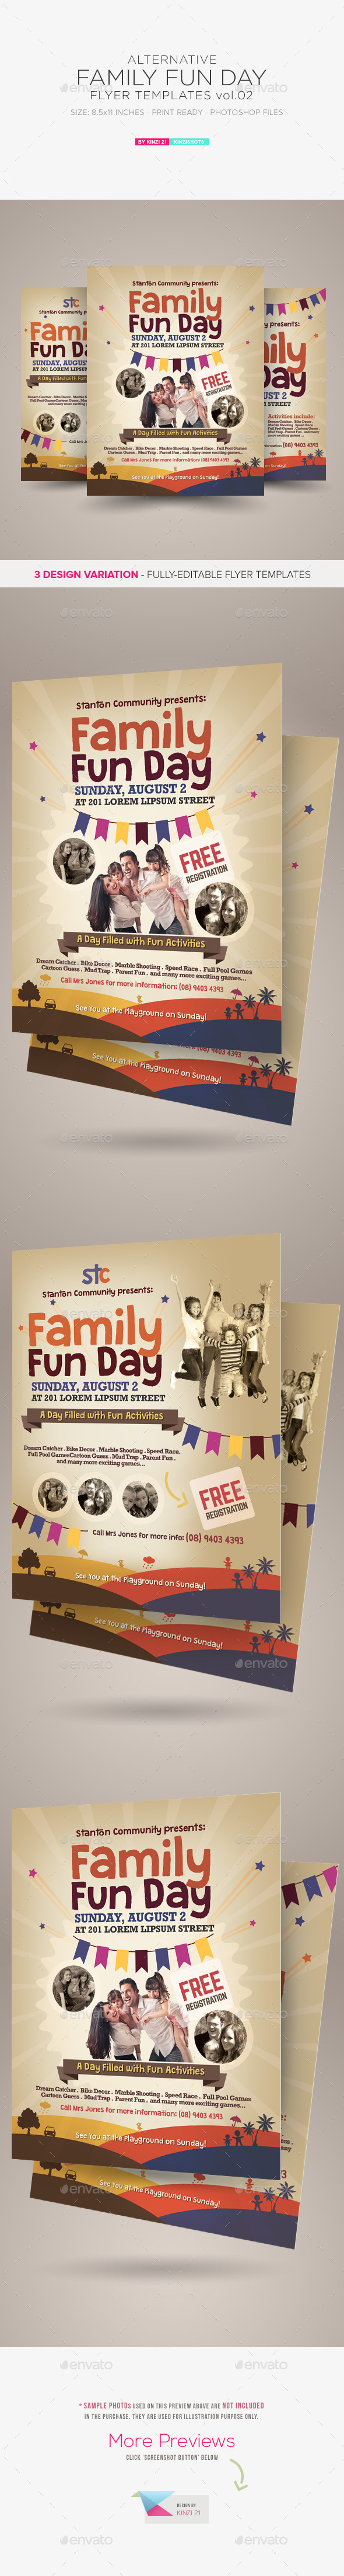 Alternative Family Fun Day Flyers vol.02 - Holidays Events